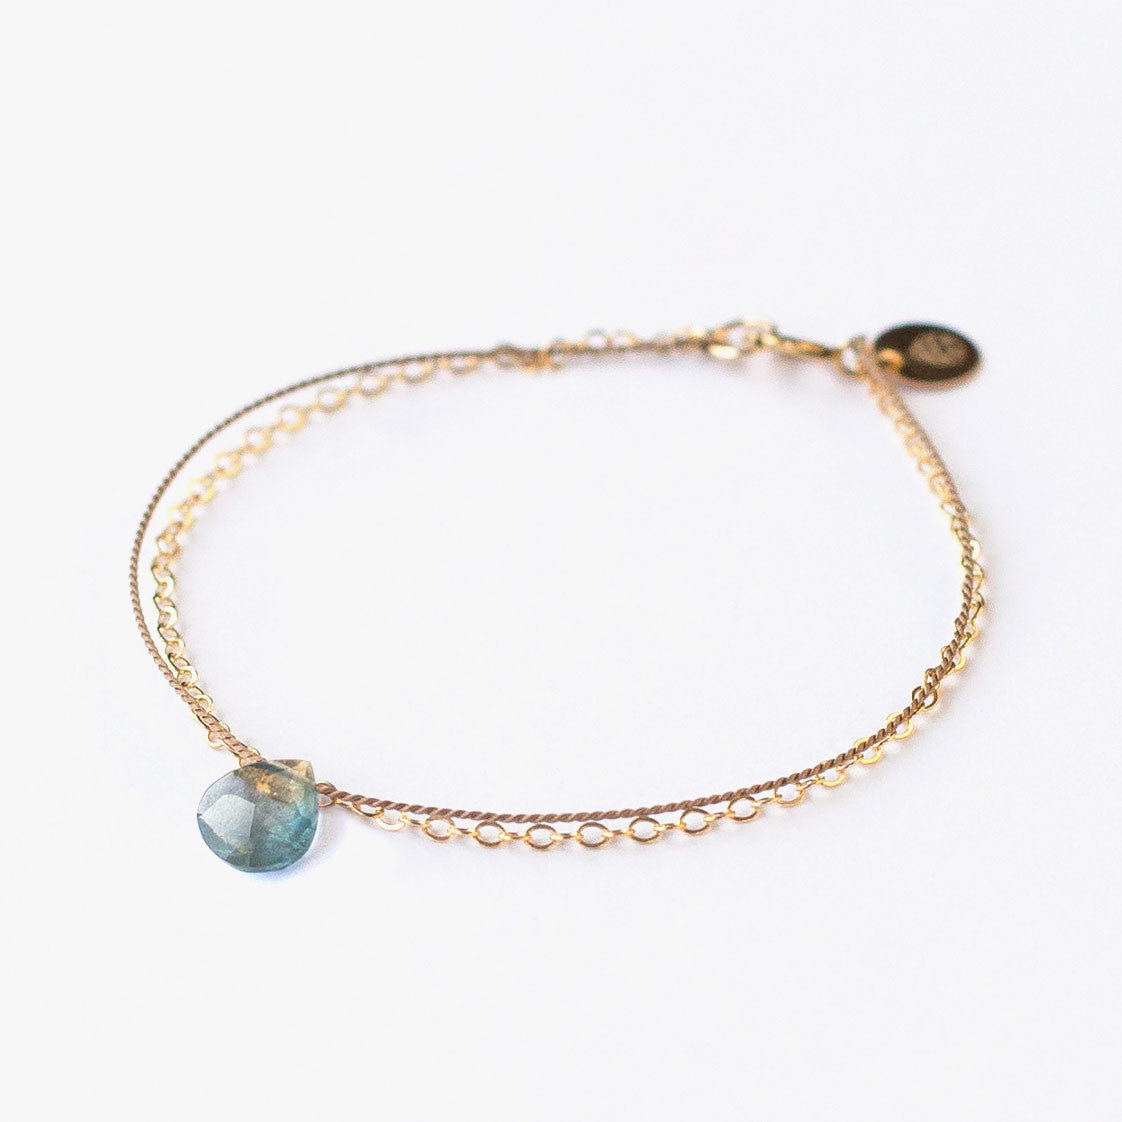 A delicate 14k gold filled Wanderlust Life chain and silk cord aquamarine semi precious gemstone bracelet